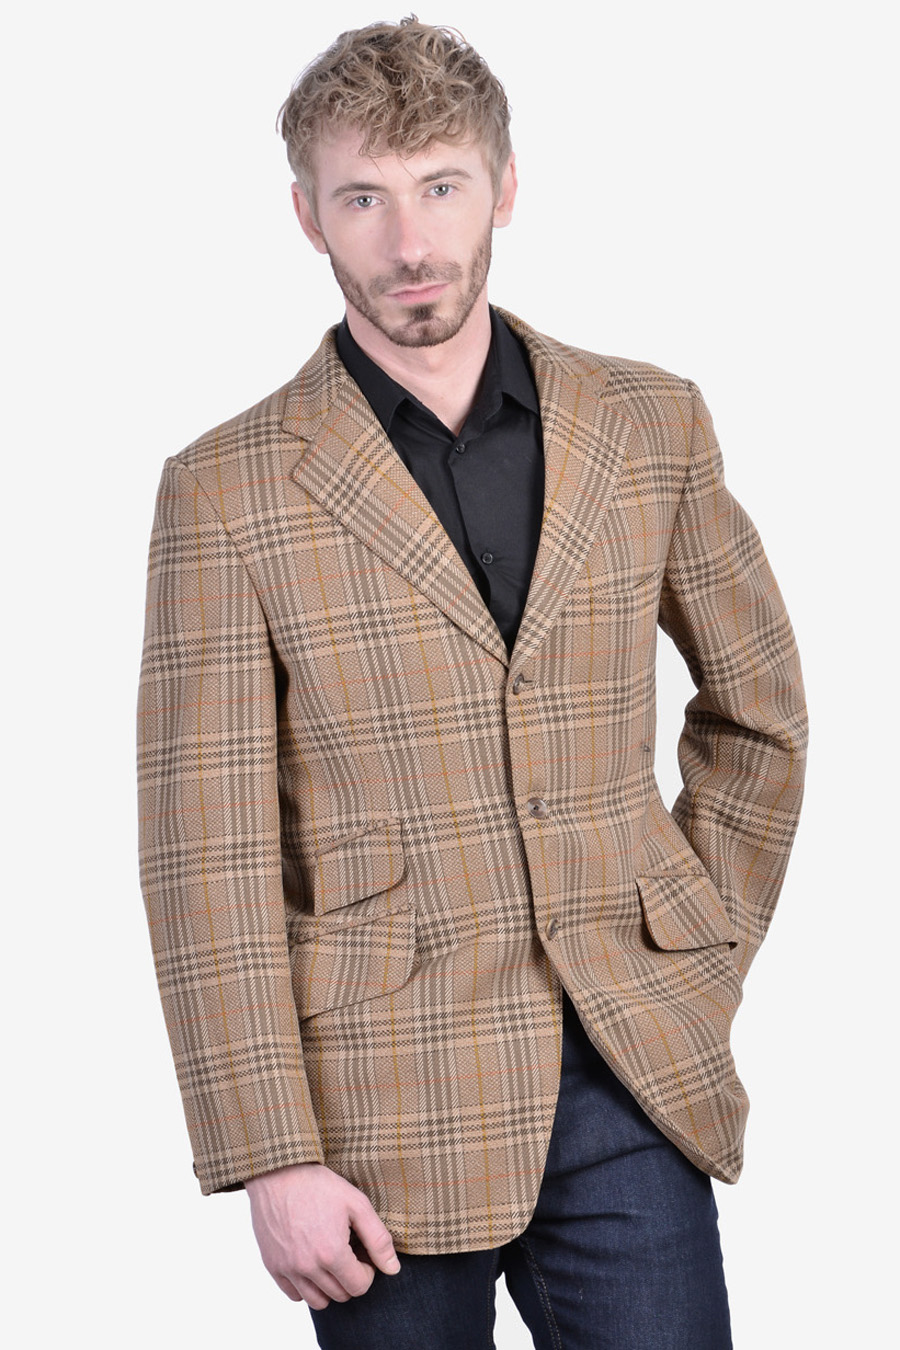 Vintage Bladen Supasax tweed jacket